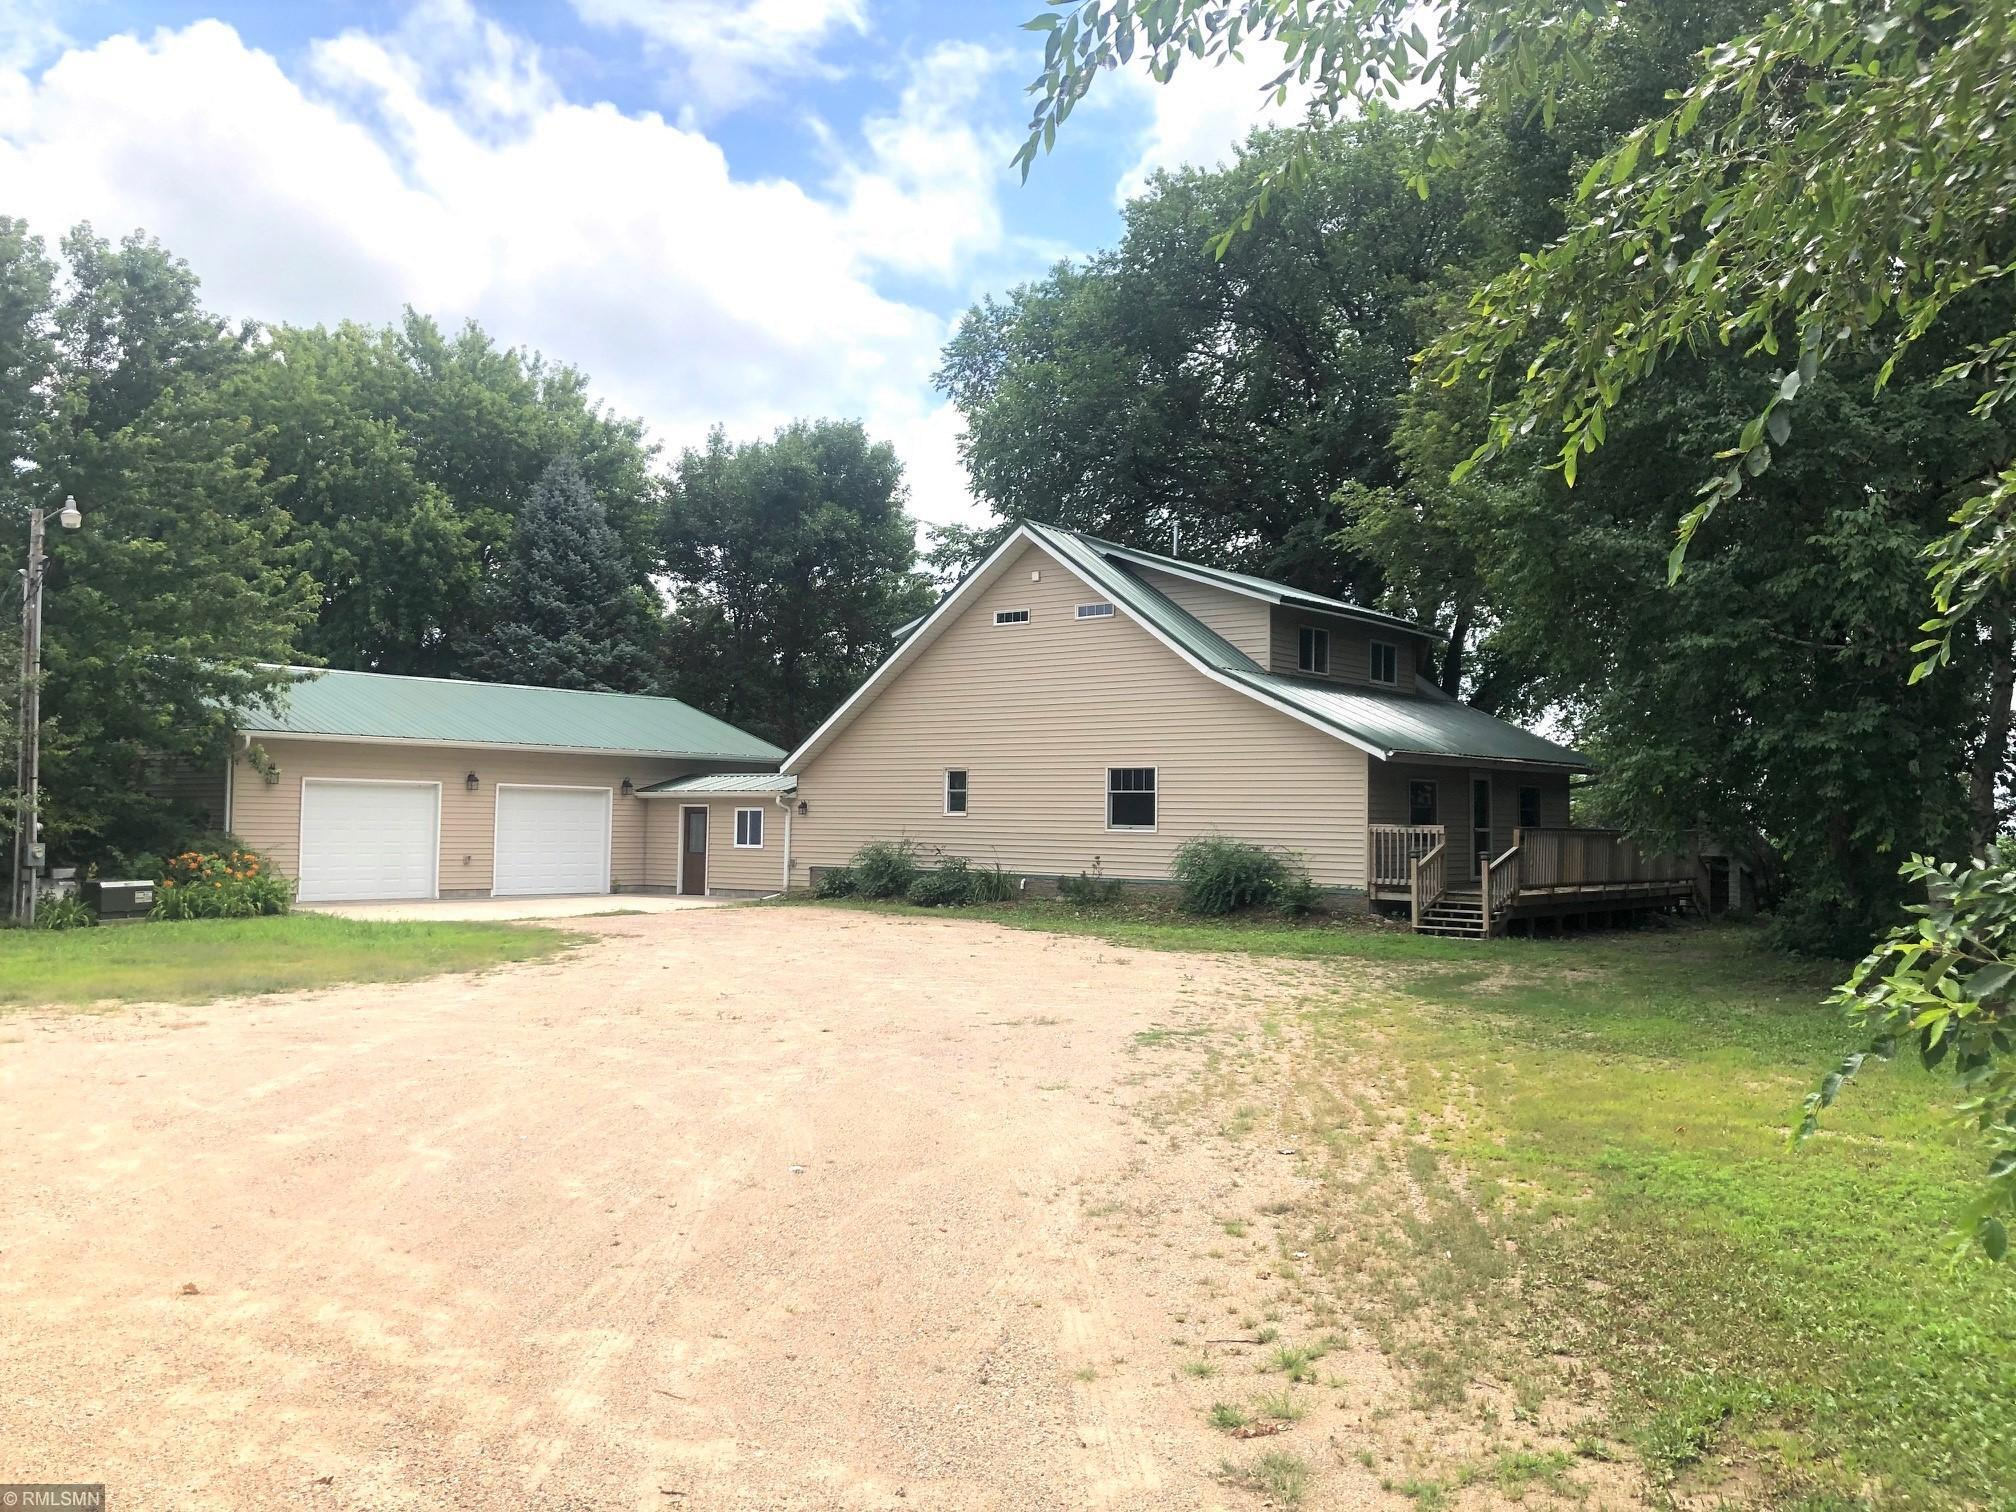 80400 US Highway 71 Property Photo - Olivia, MN real estate listing